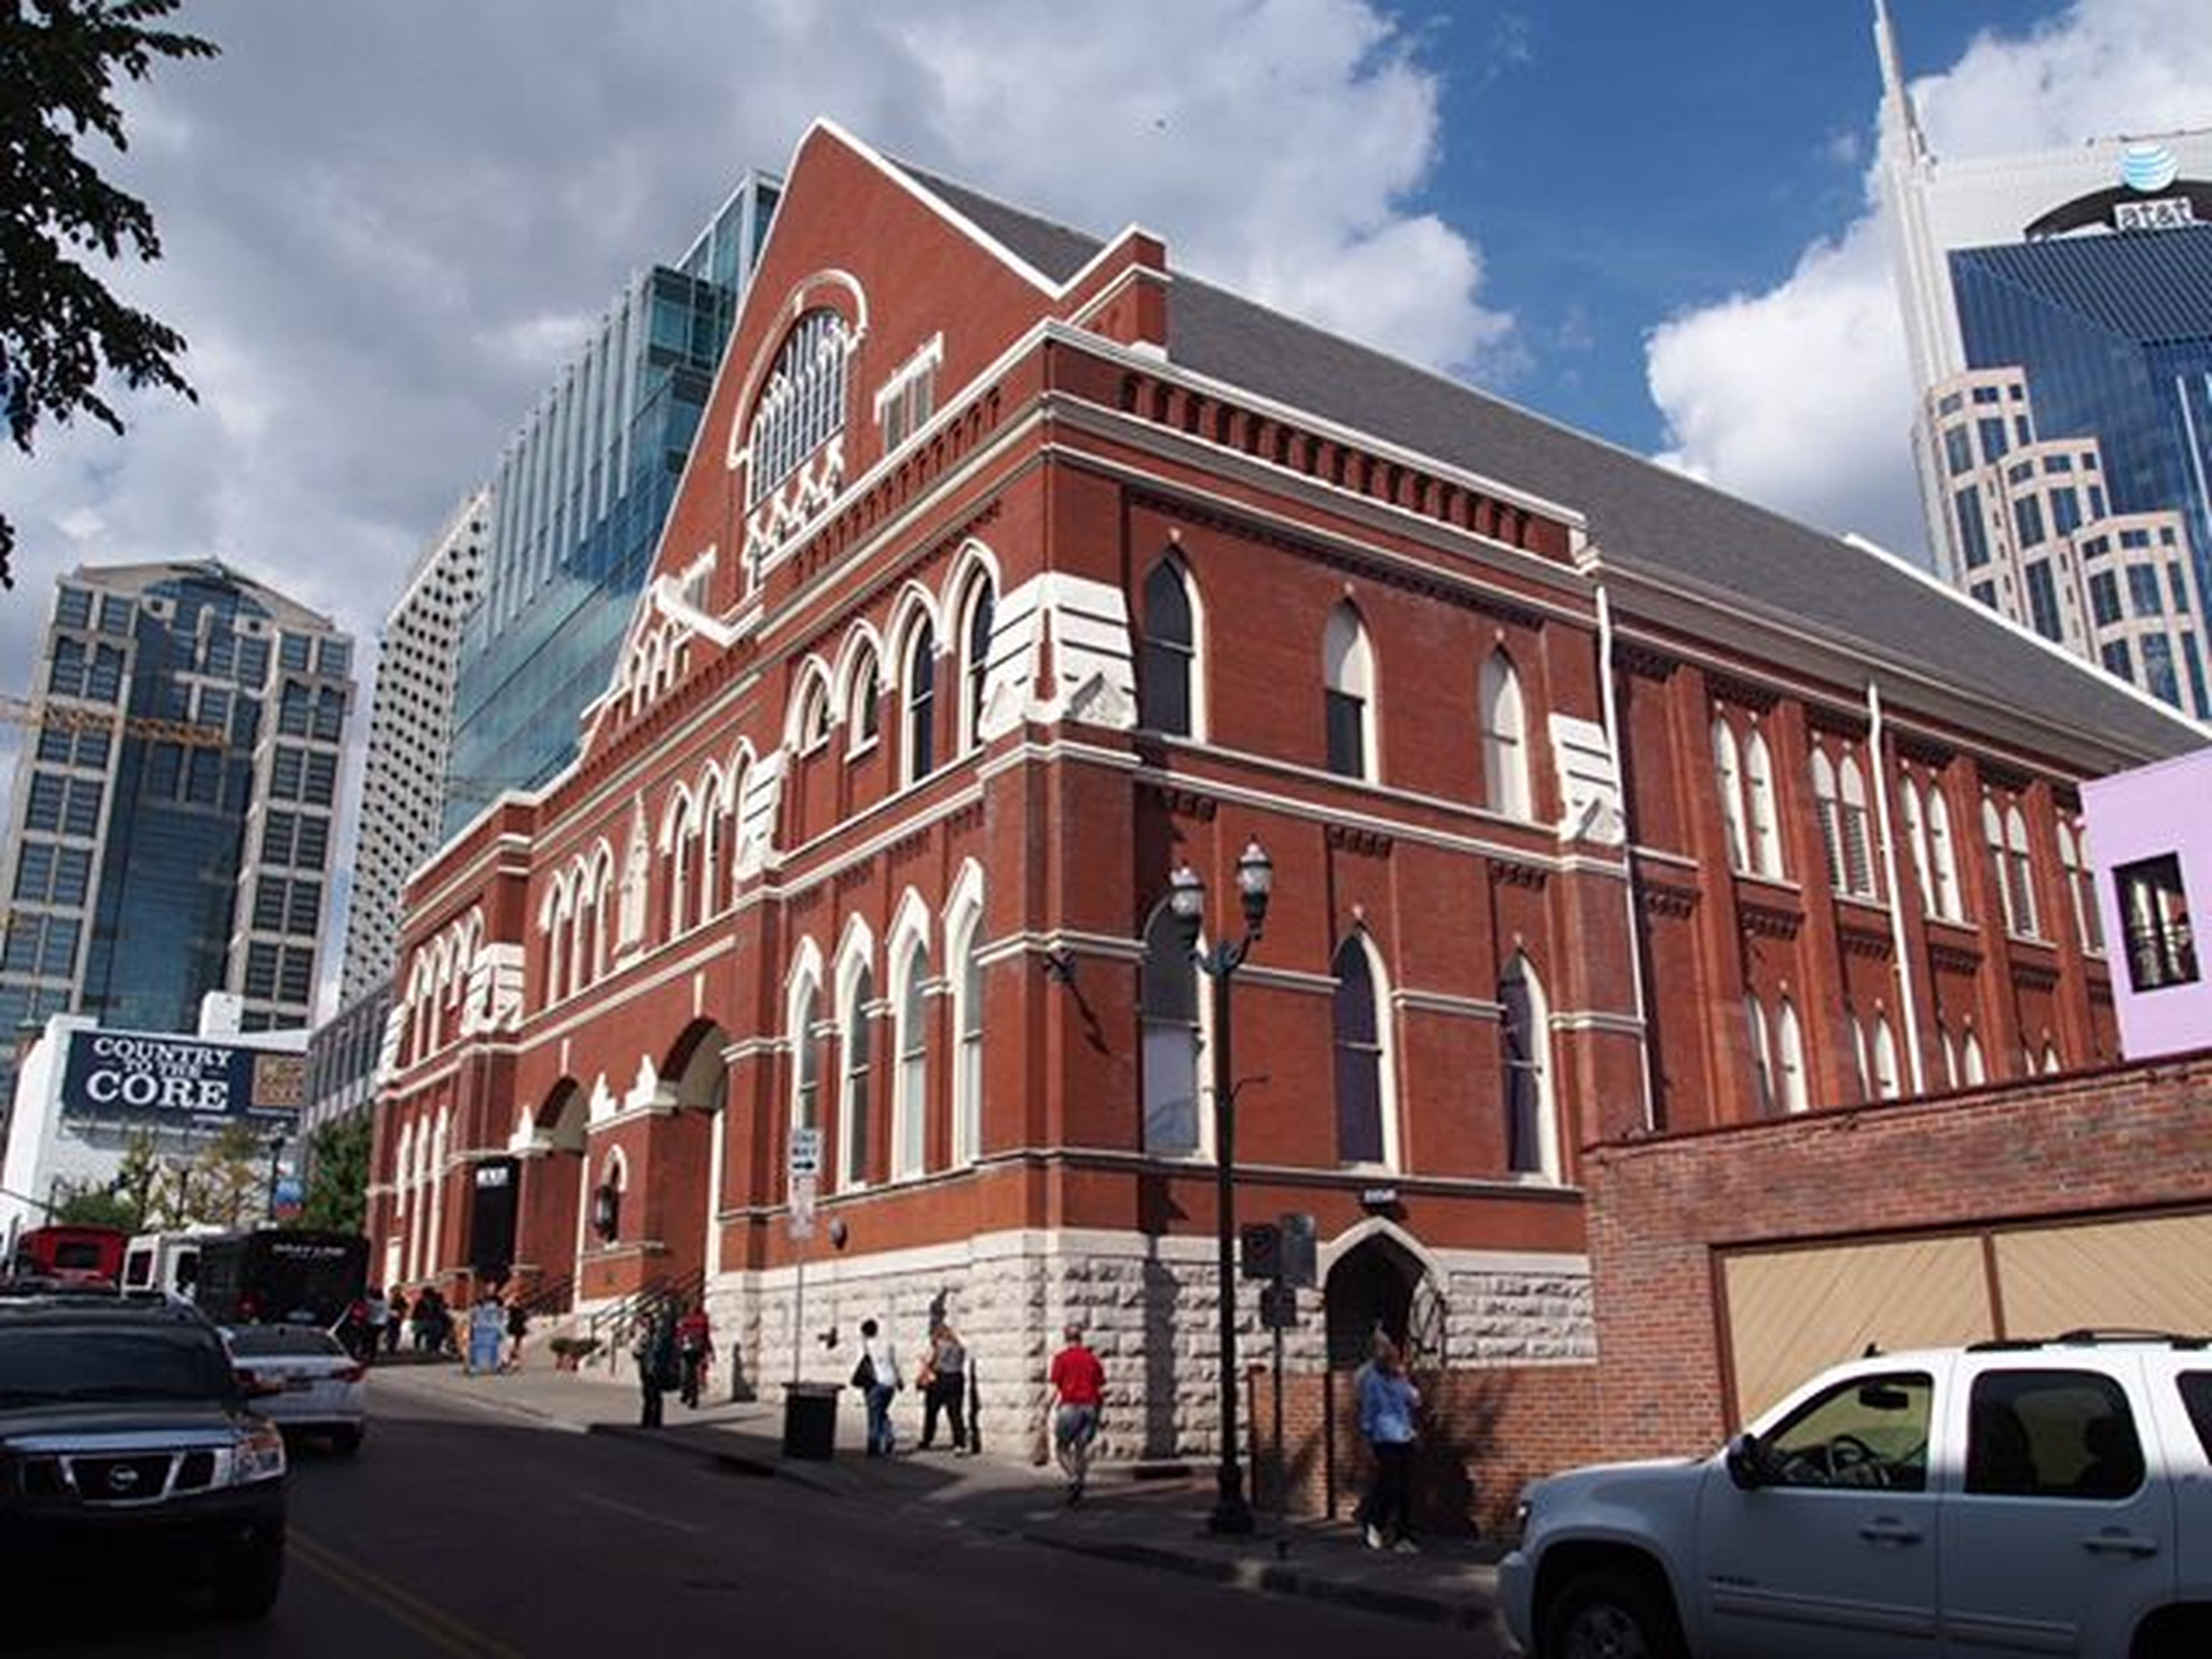 @theryman in Nashville, seeing the routes of bluegrass and country music ------------------------------------- Nashville NashvilleTN Theryman Therymanauditorium History Musichistory Musicalhistory Musiccity Musiccityusa Olympus Cloud Clouds Cloudporn Wanderlustcontest Explorenashville Exploretennessee Historical Country Bluegrass